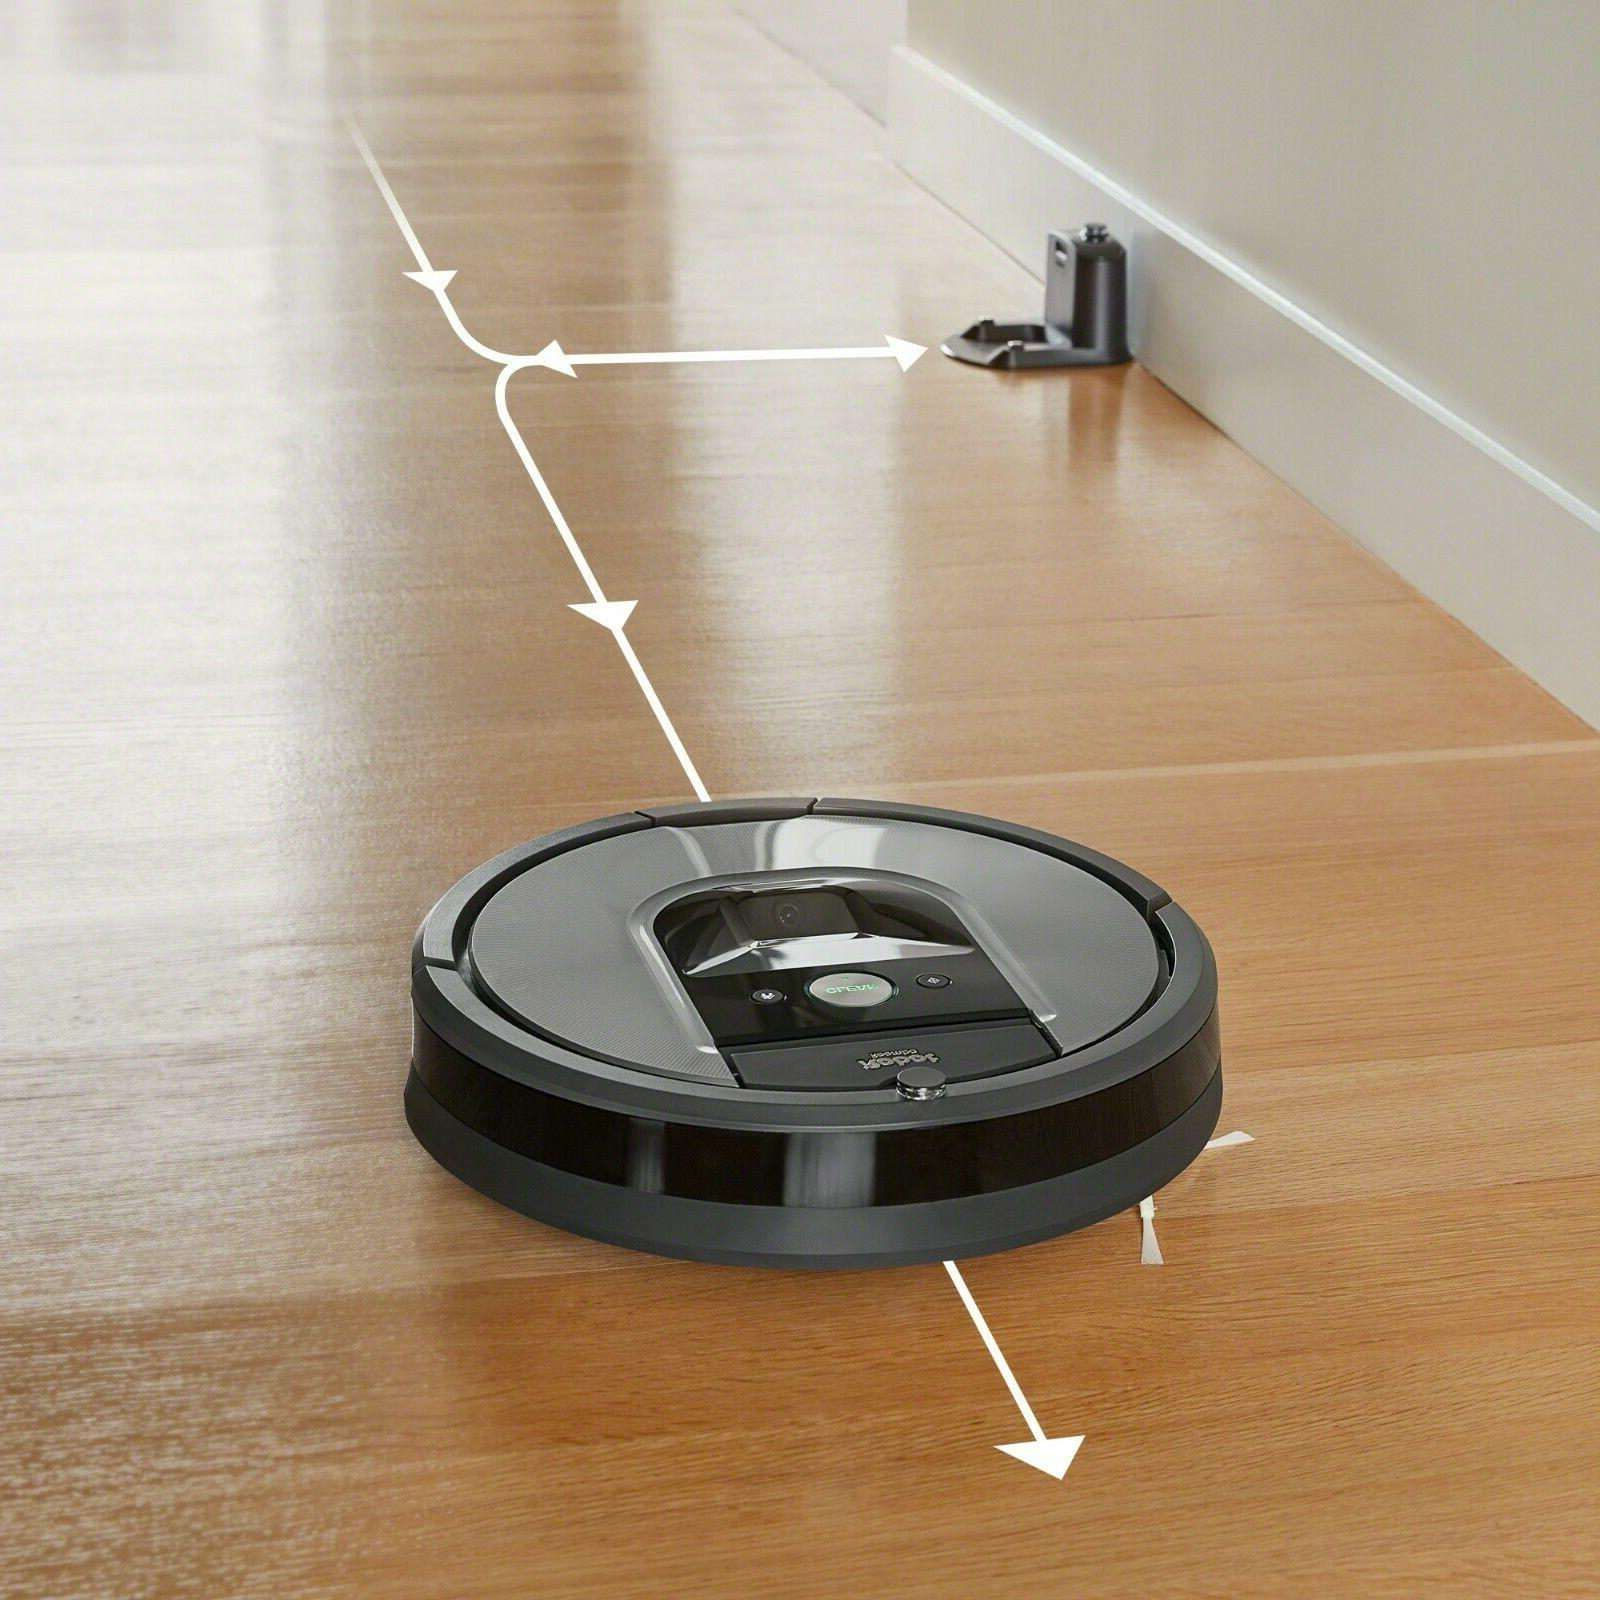 iRobot Roomba Cleaning Robot Manufacturer Certified Refurbished!